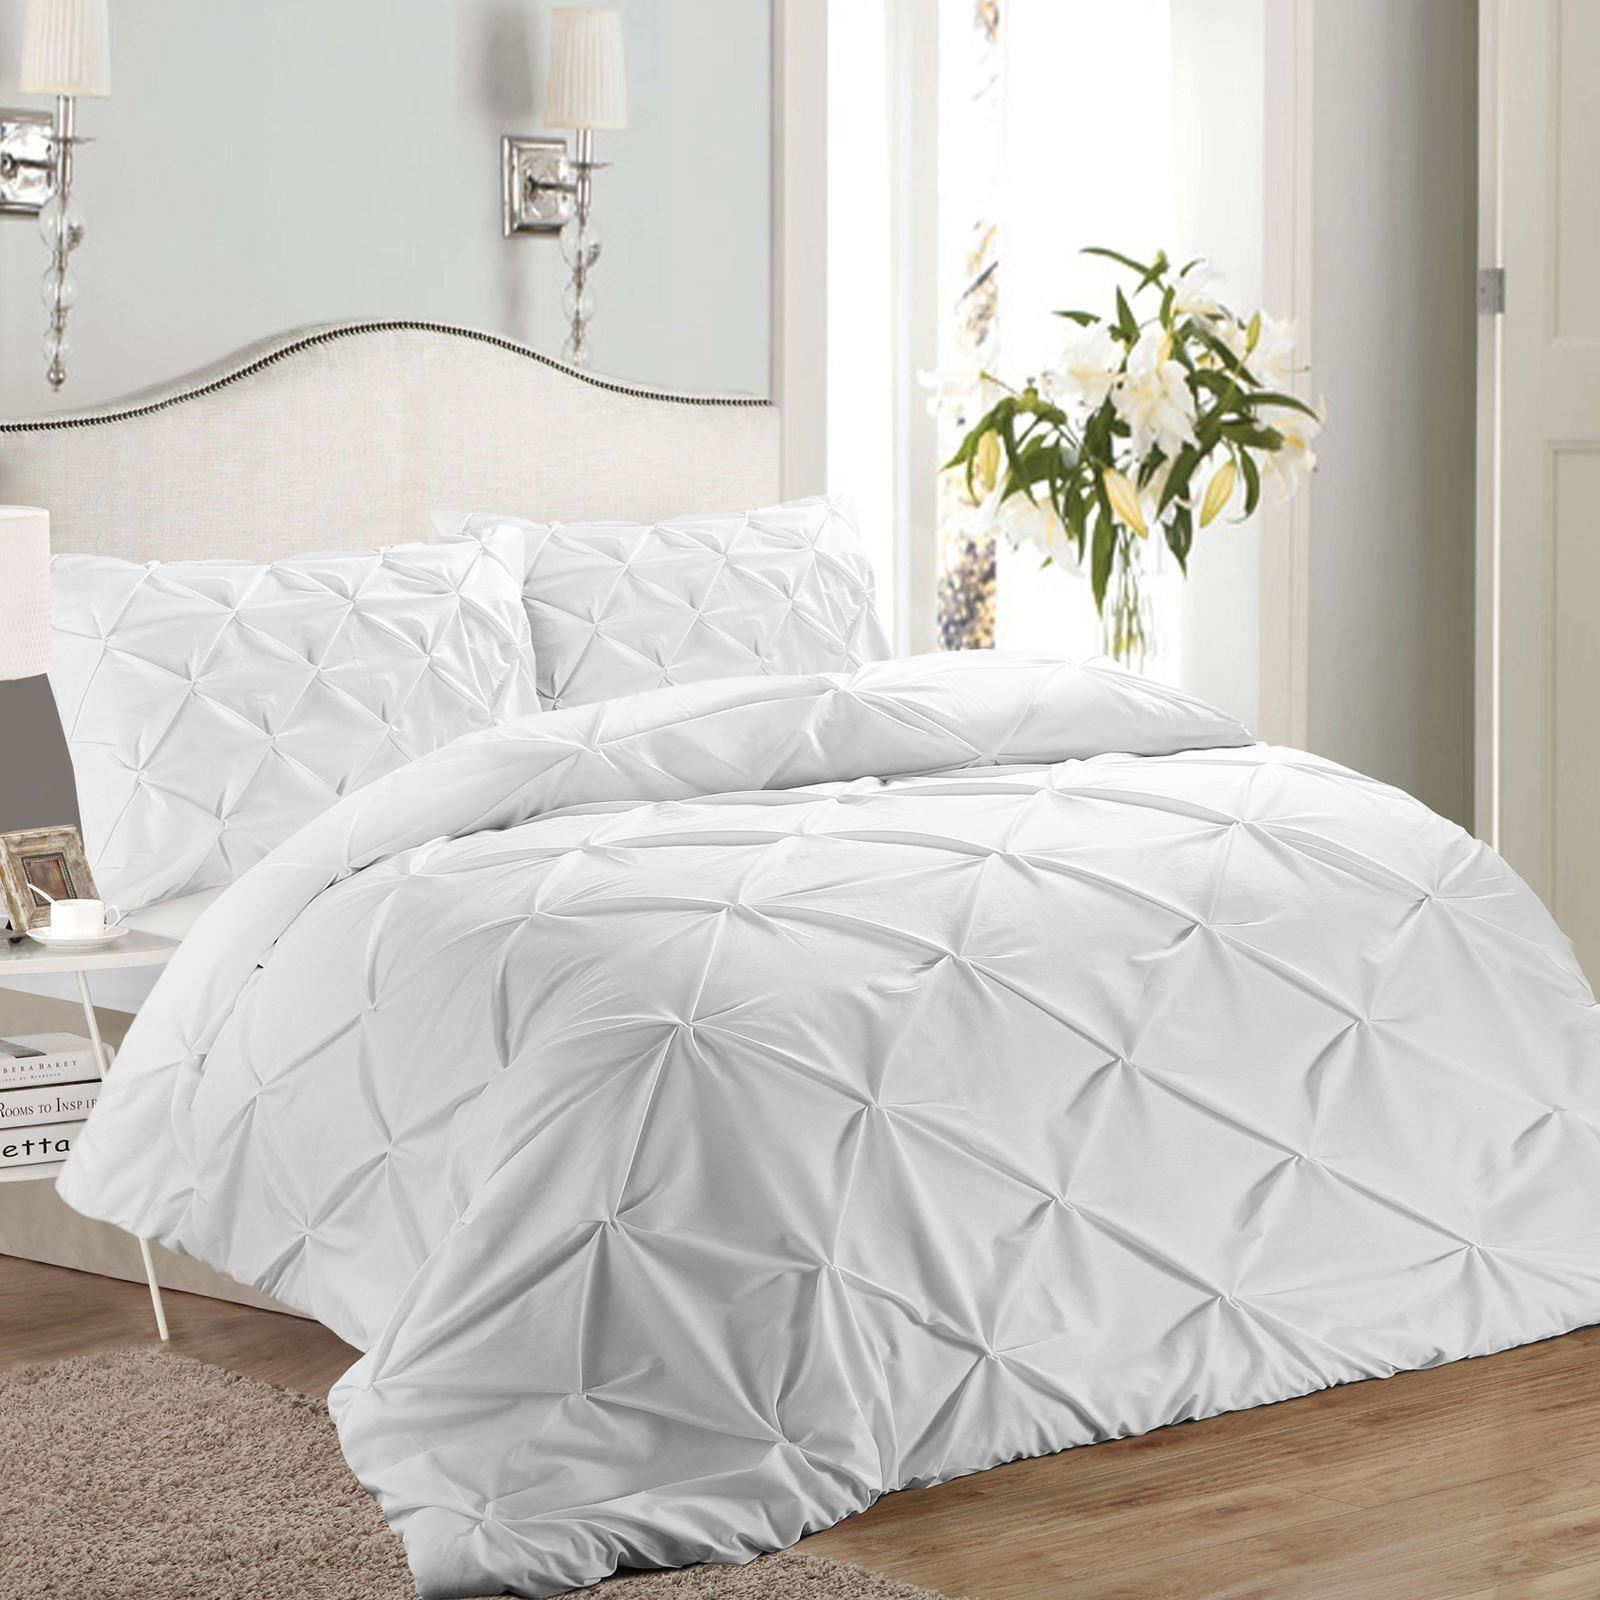 sheets dyed cover inspired be pleated pin tucked pintuck sweetly rit duvet from